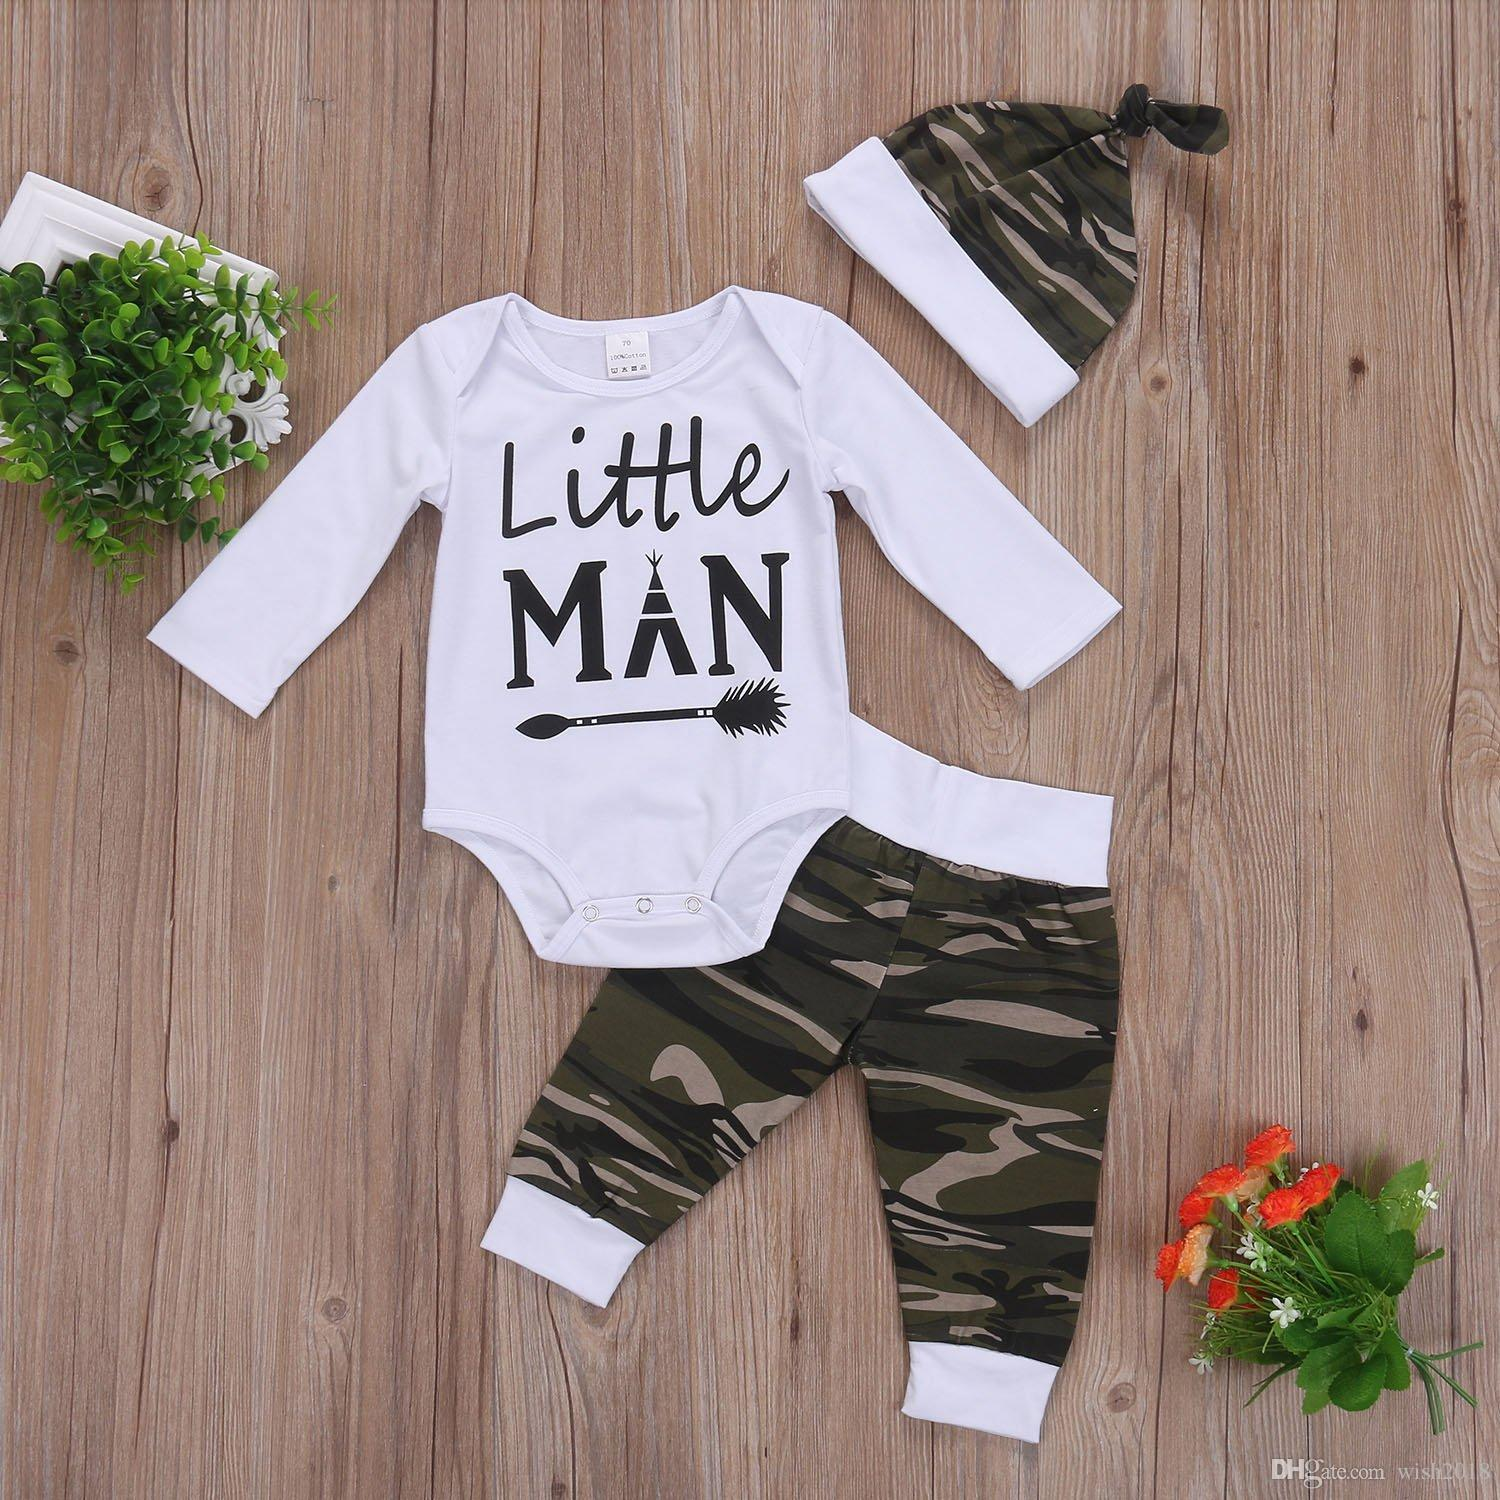 44b6b699dfa5 2019 Baby Boy Girl Suit For Baby Shower Deer Print Long Sleeve Romper+Long  Pants+Hat From Wish2018